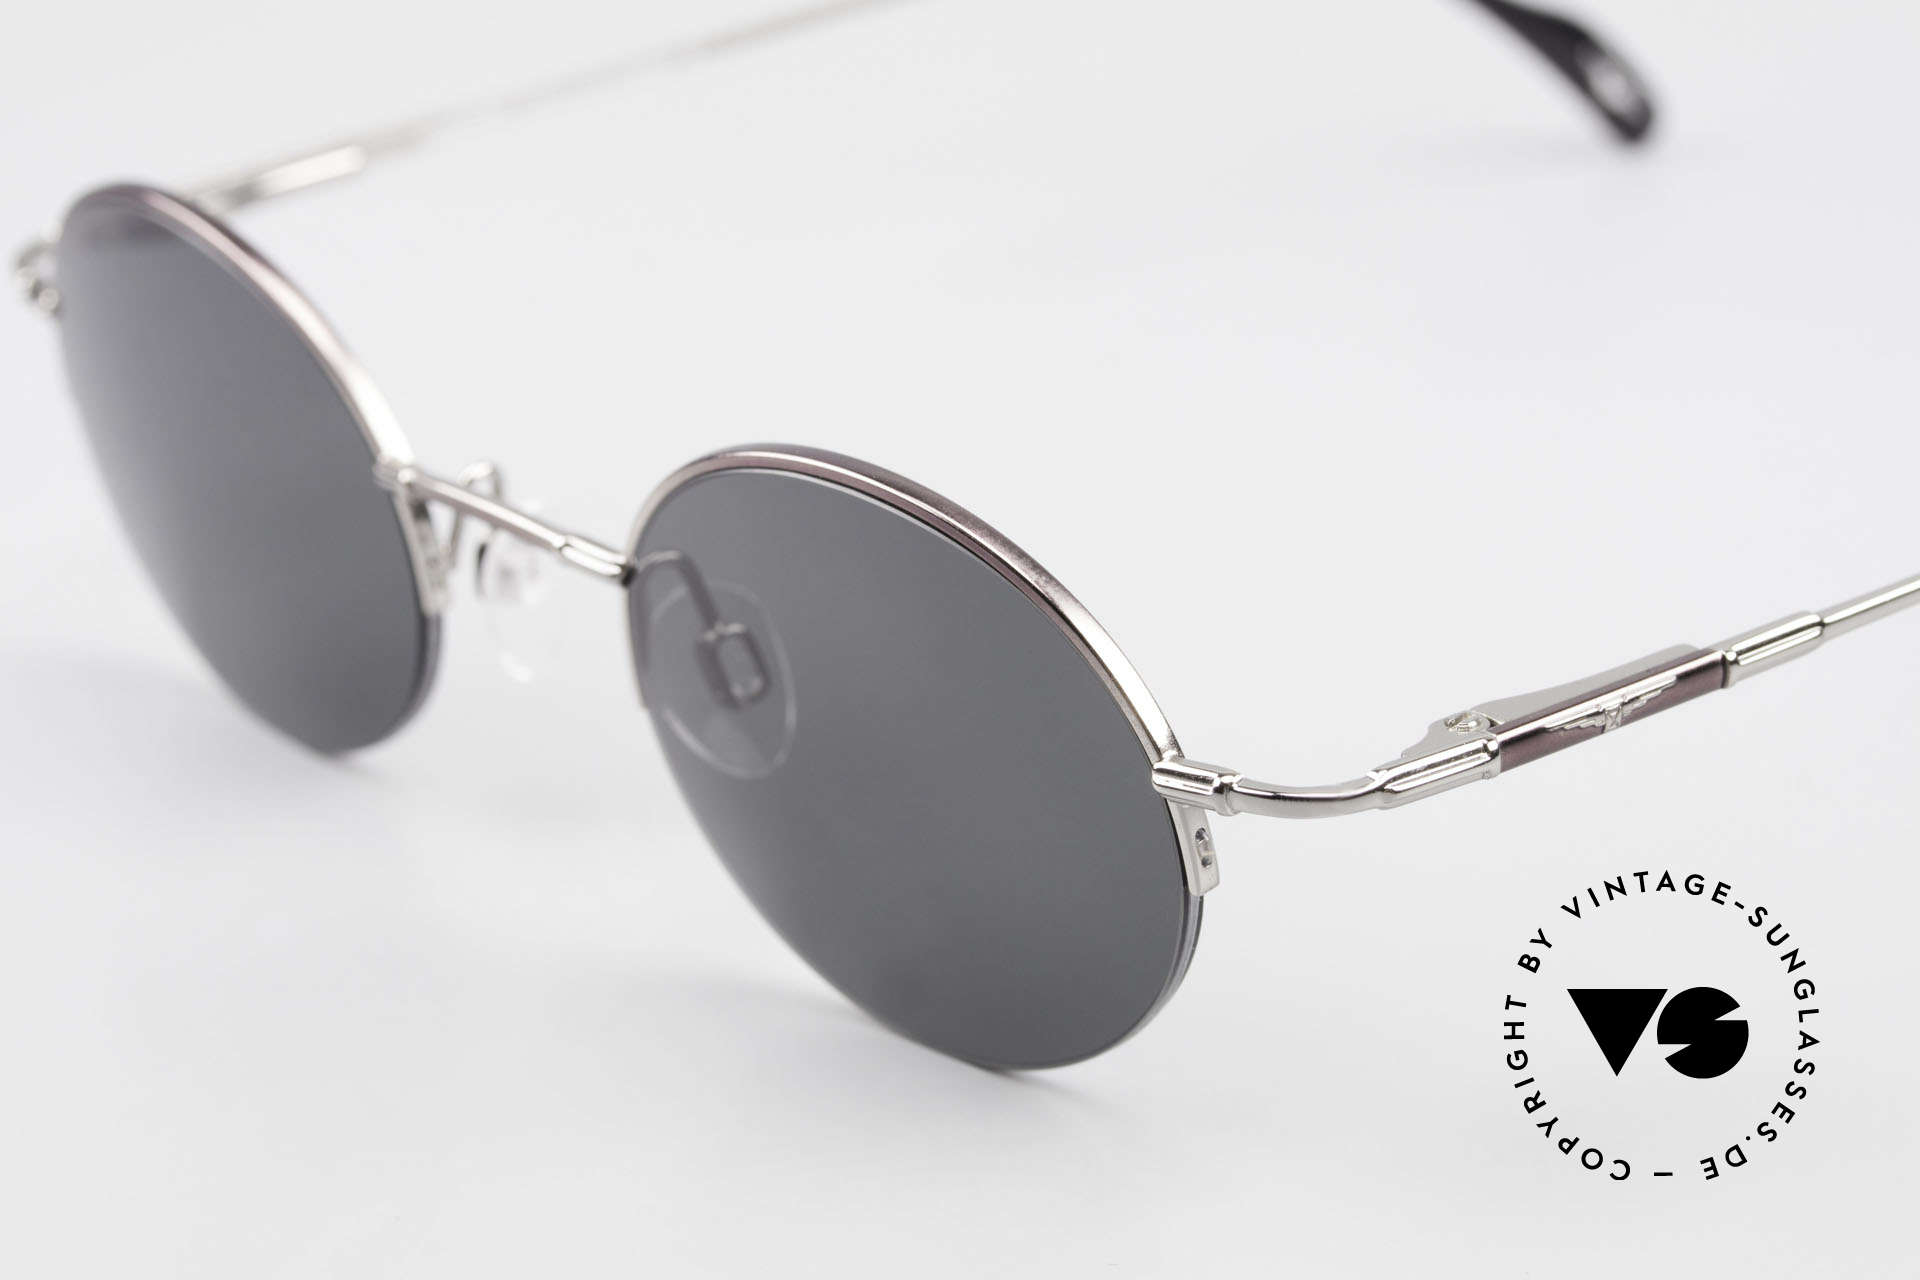 Longines 4363 90's Sunglasses Round Oval, a timeless old ORIGINAL in cooperation with Metzler, Made for Men and Women